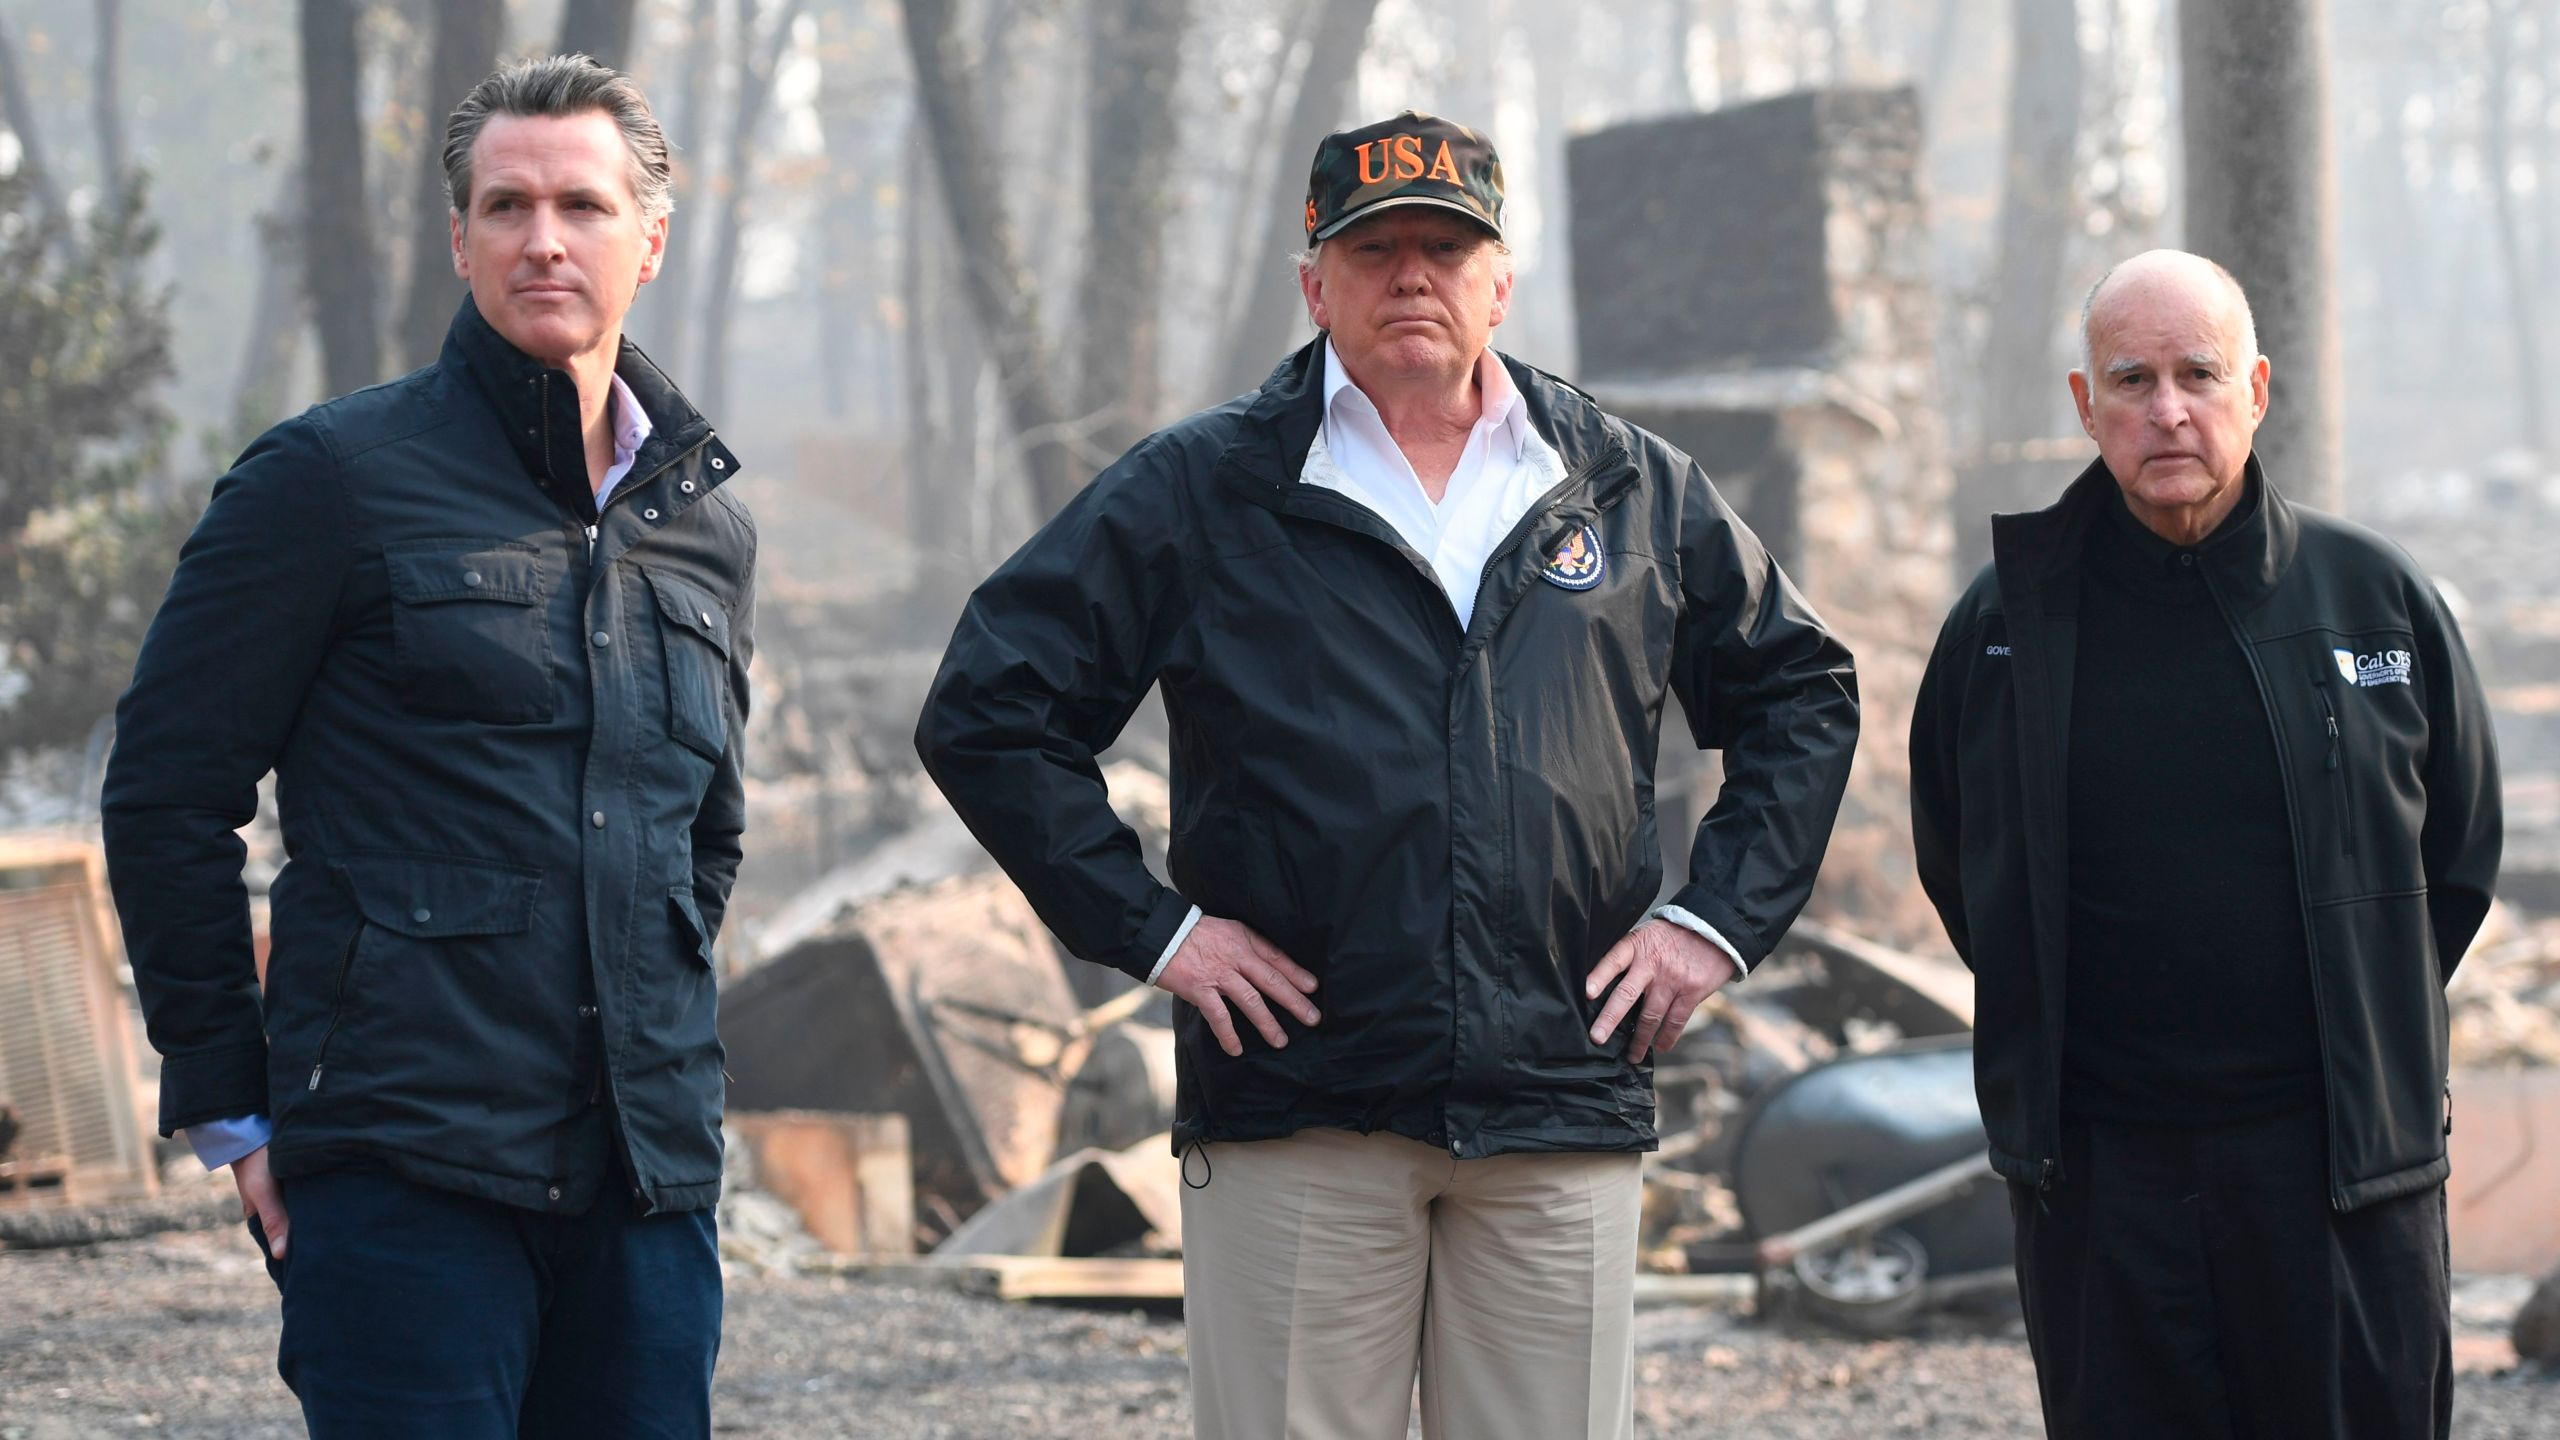 Donald Trump stands alongside Gov. Jerry Brown and Gov.-elect Gavin Newsom as they view damage from the Camp Fire in Paradise, California on Nov. 17, 2018. (Credit: SAUL LOEB/AFP/Getty Images)